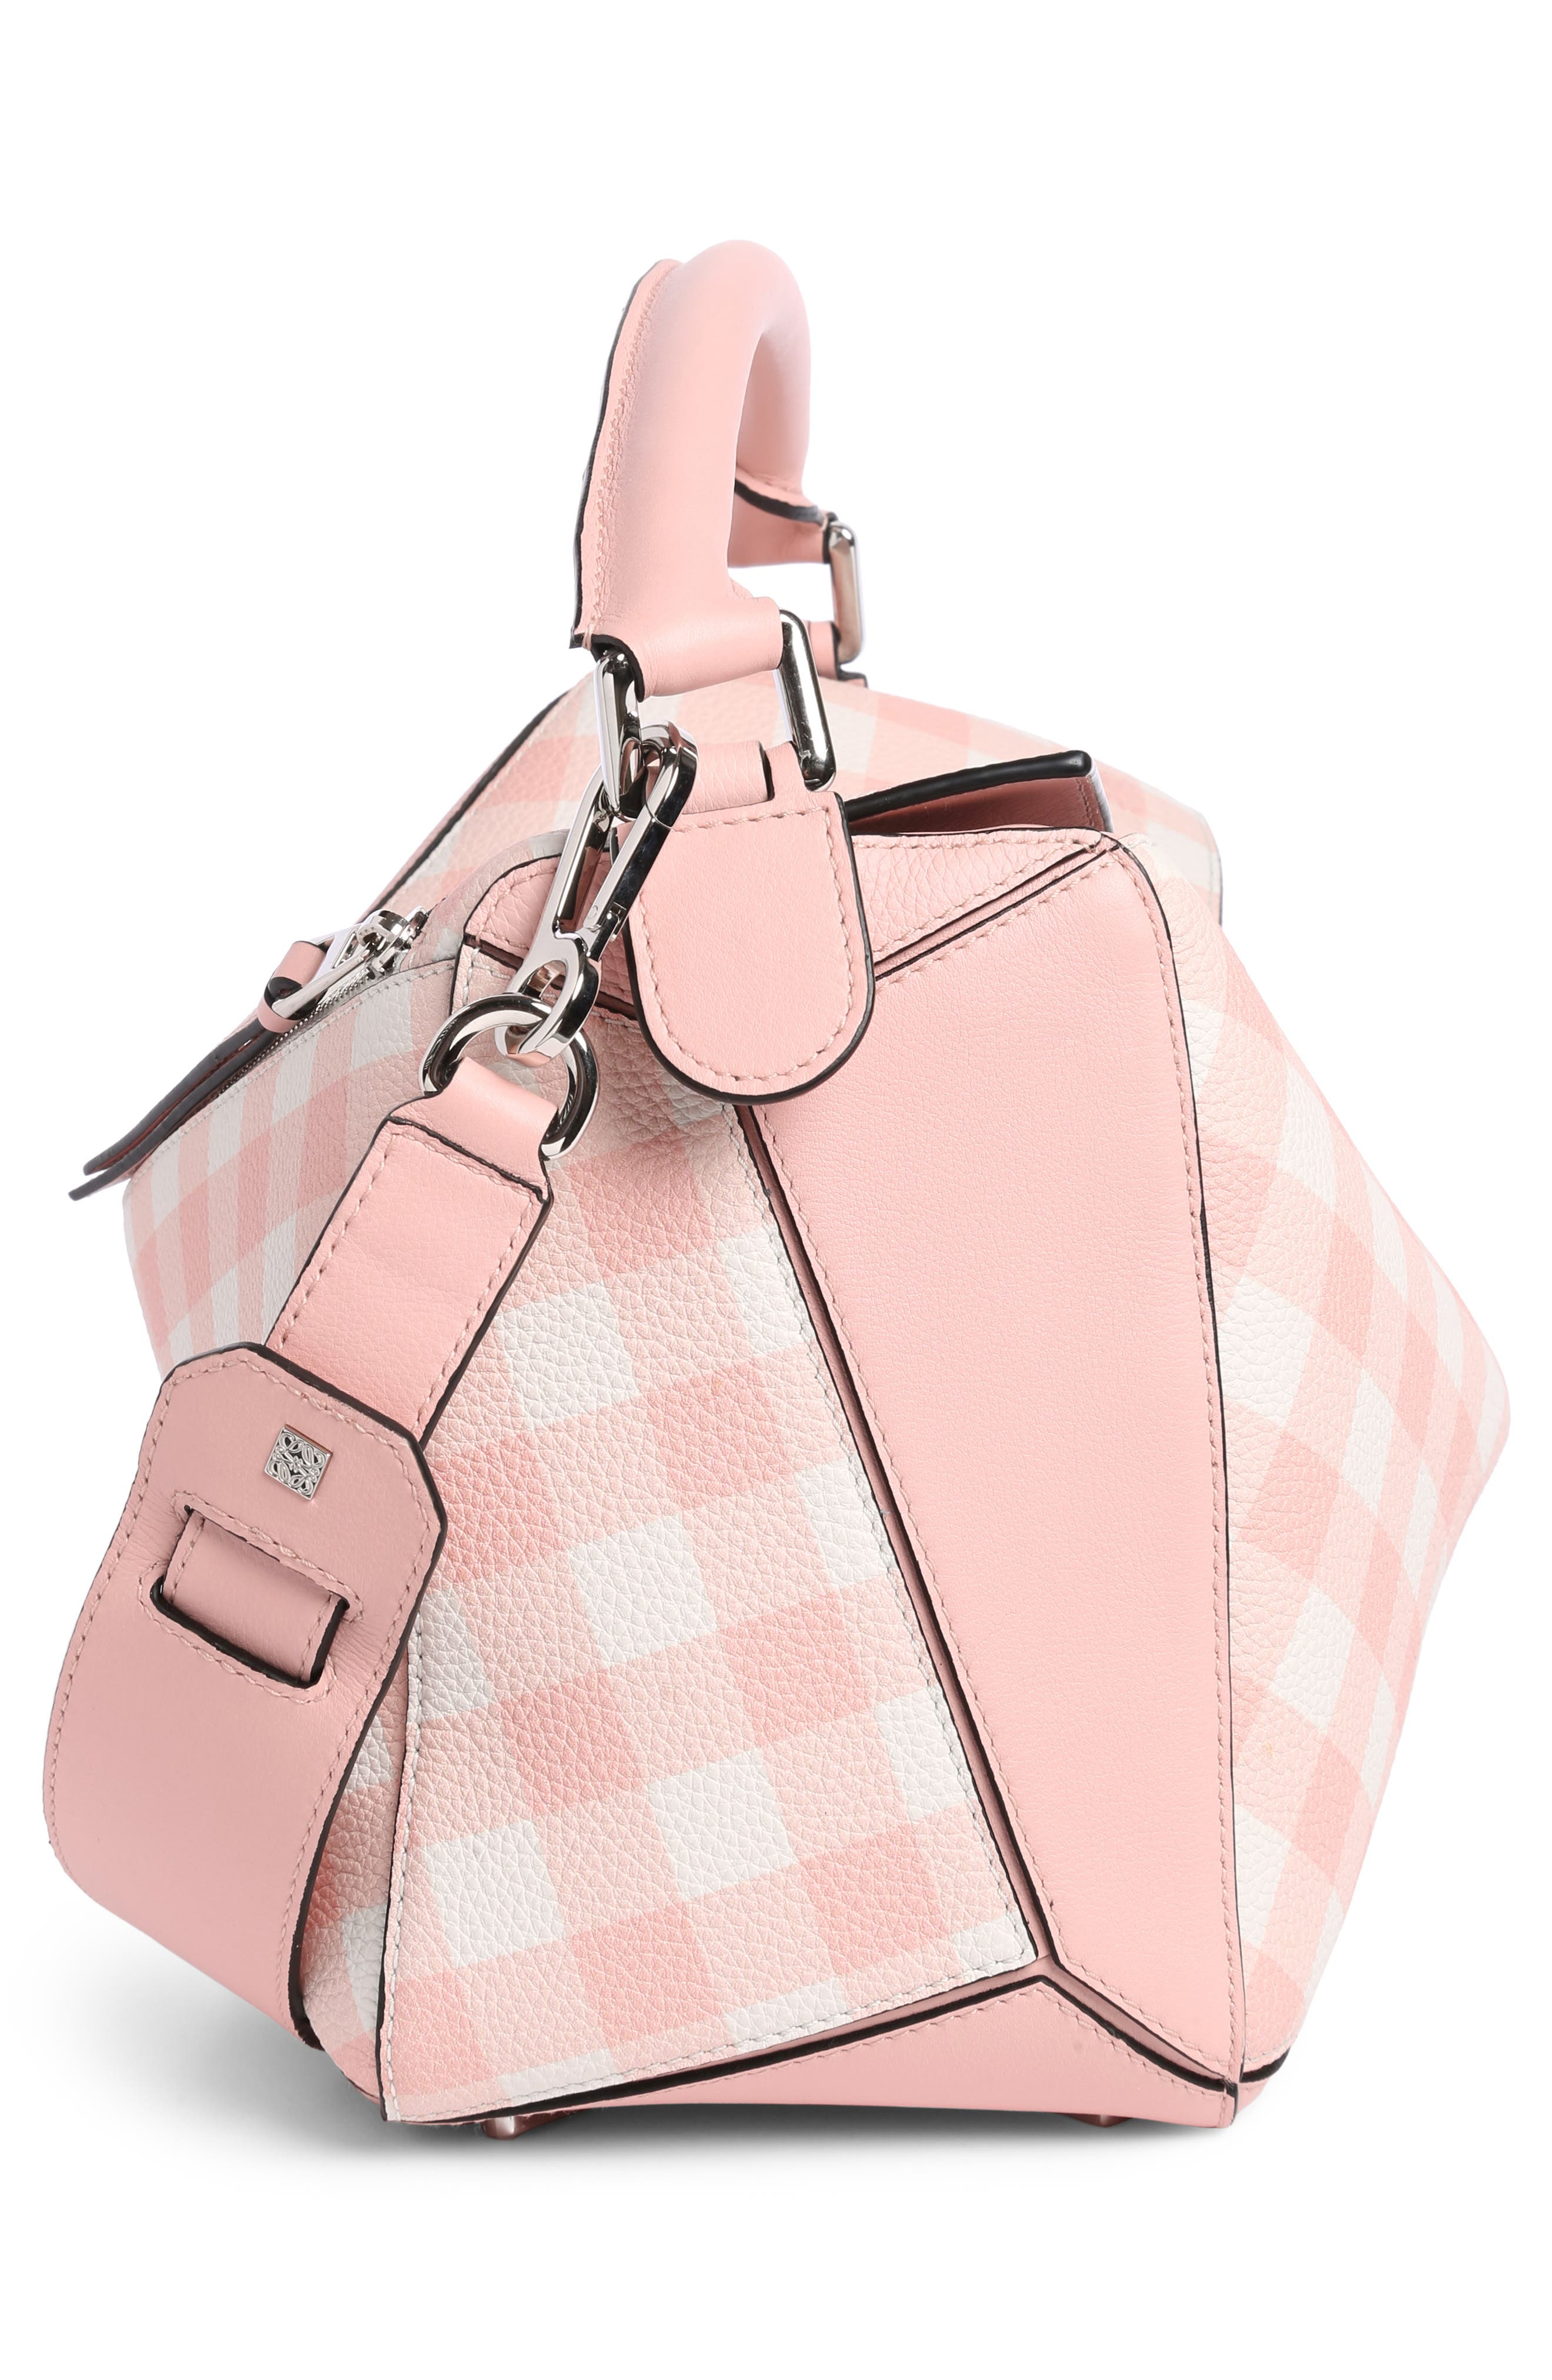 Puzzle Gingham Calfskin Leather Bag,                             Alternate thumbnail 3, color,                             Salmon